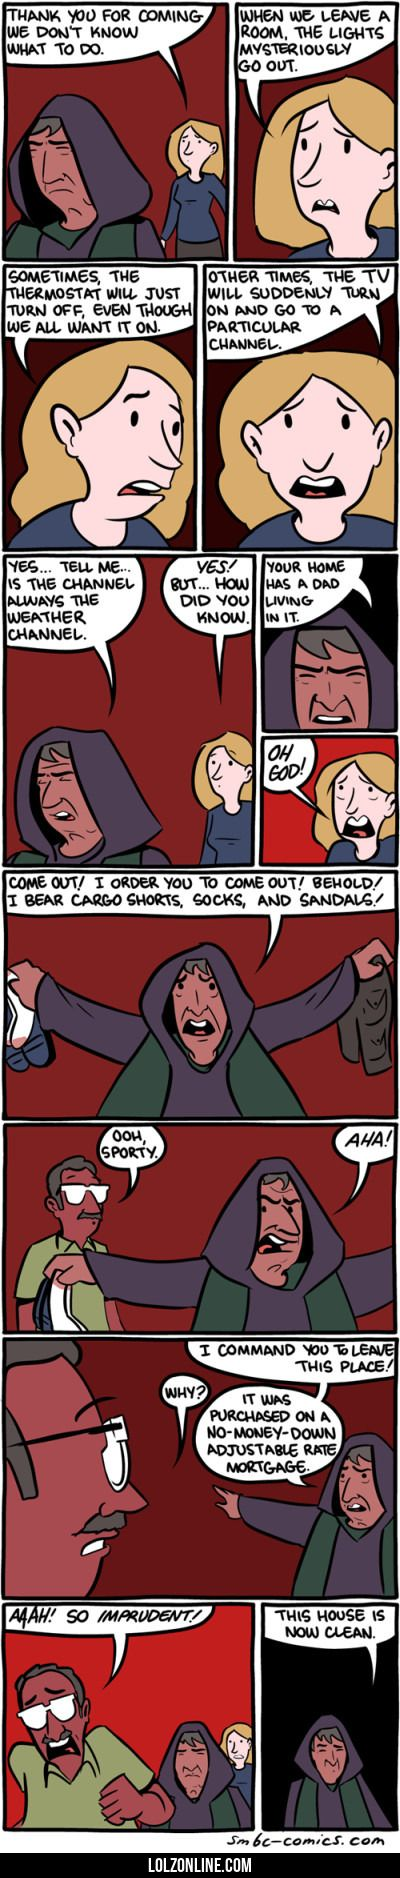 Thank You For Coming. We Don't Know What To Do#funny #lol #lolzonline